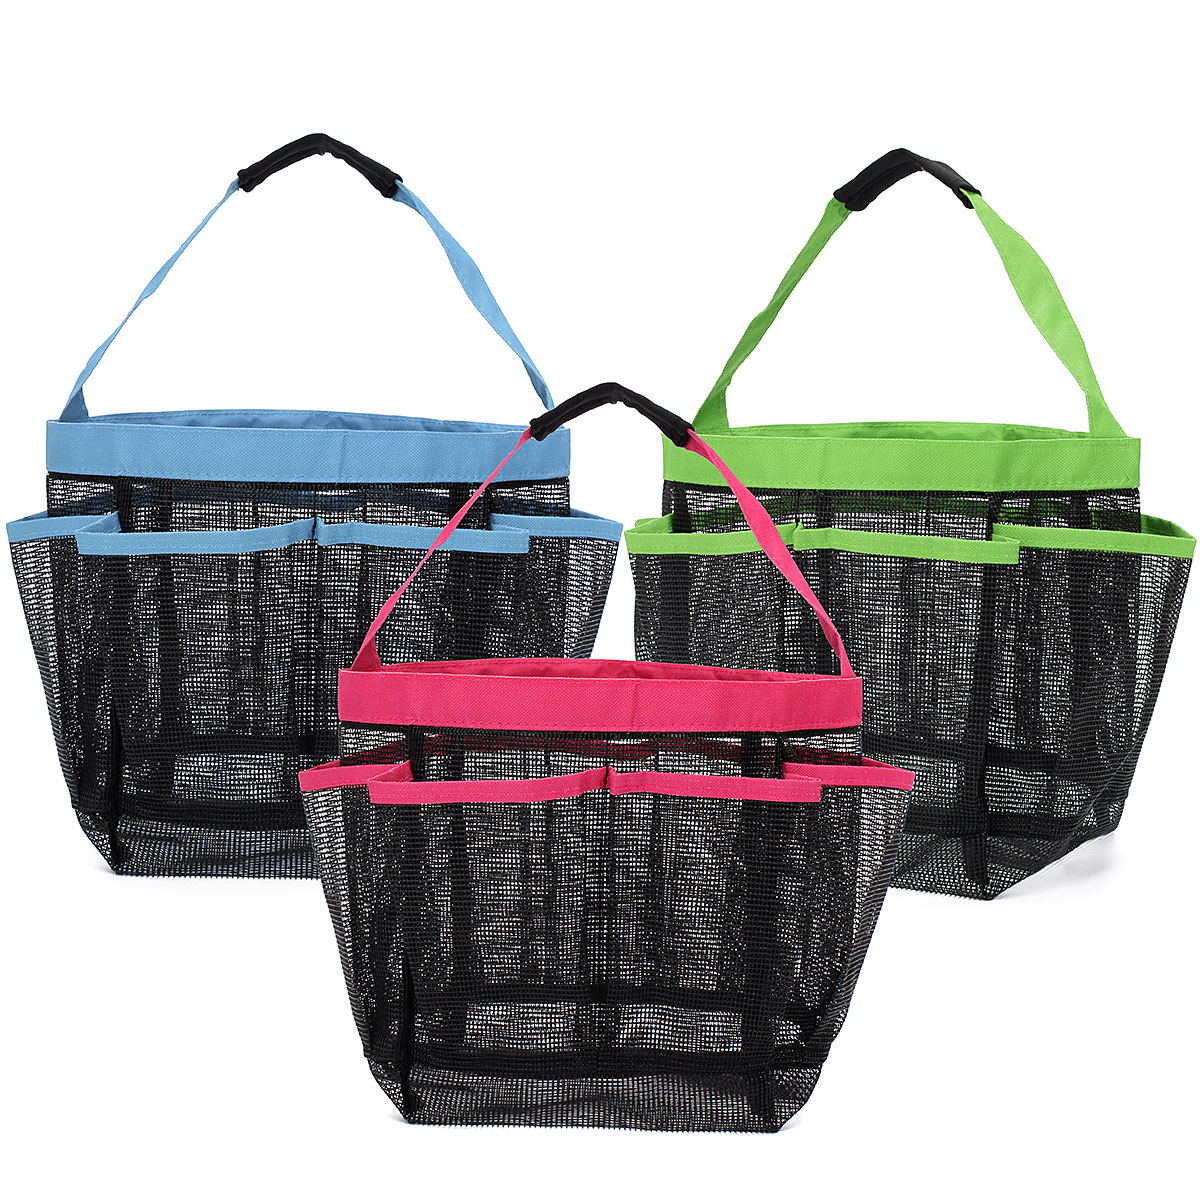 8 Pockets Shower Caddy Mesh Portable Quick Dry Travel Tote